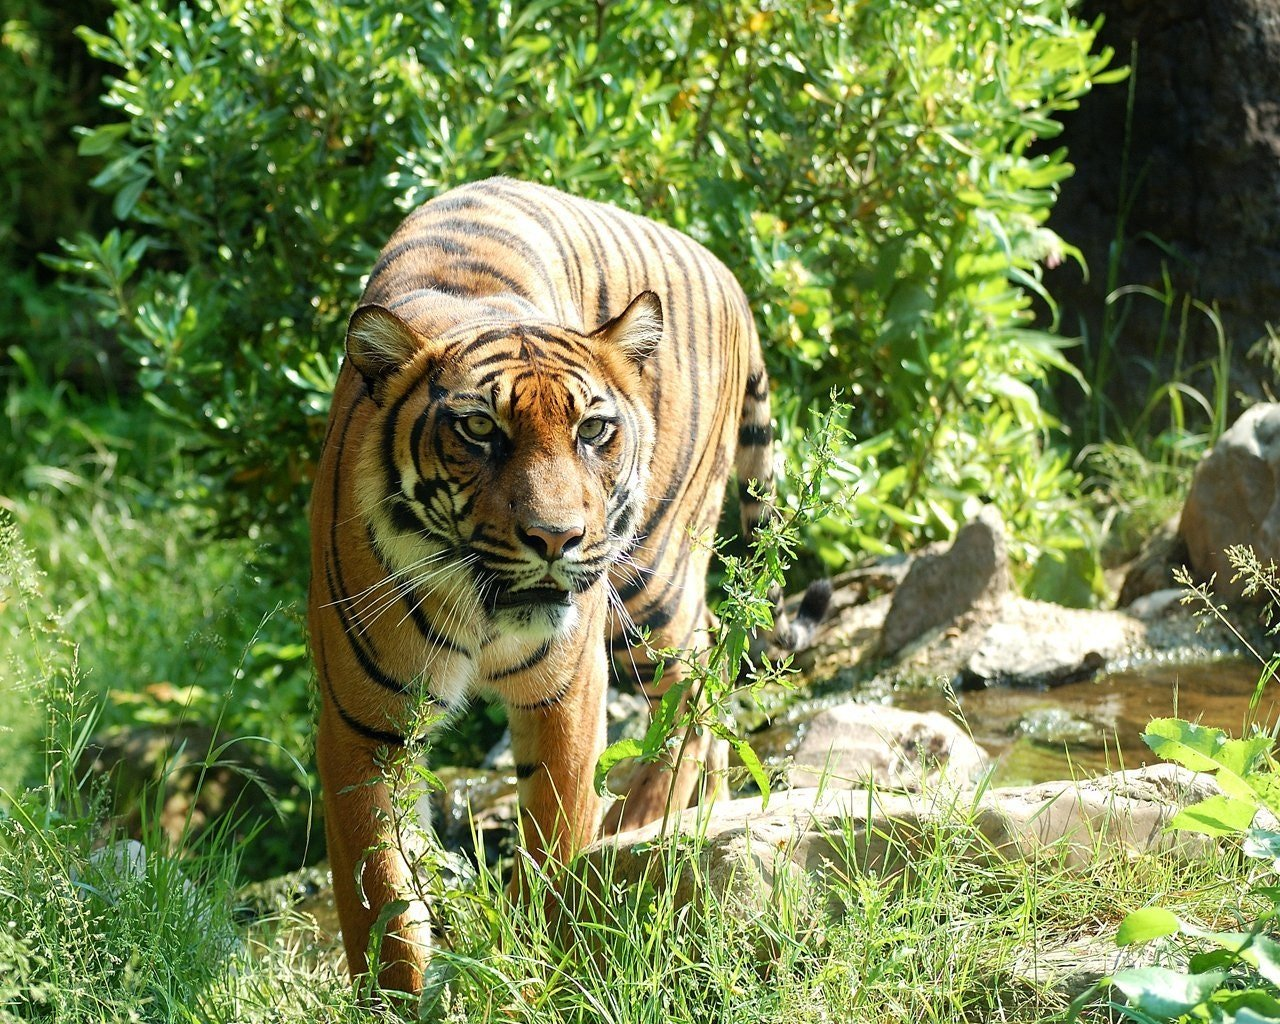 Picture of a tiger in a park | Photo: Pixabay